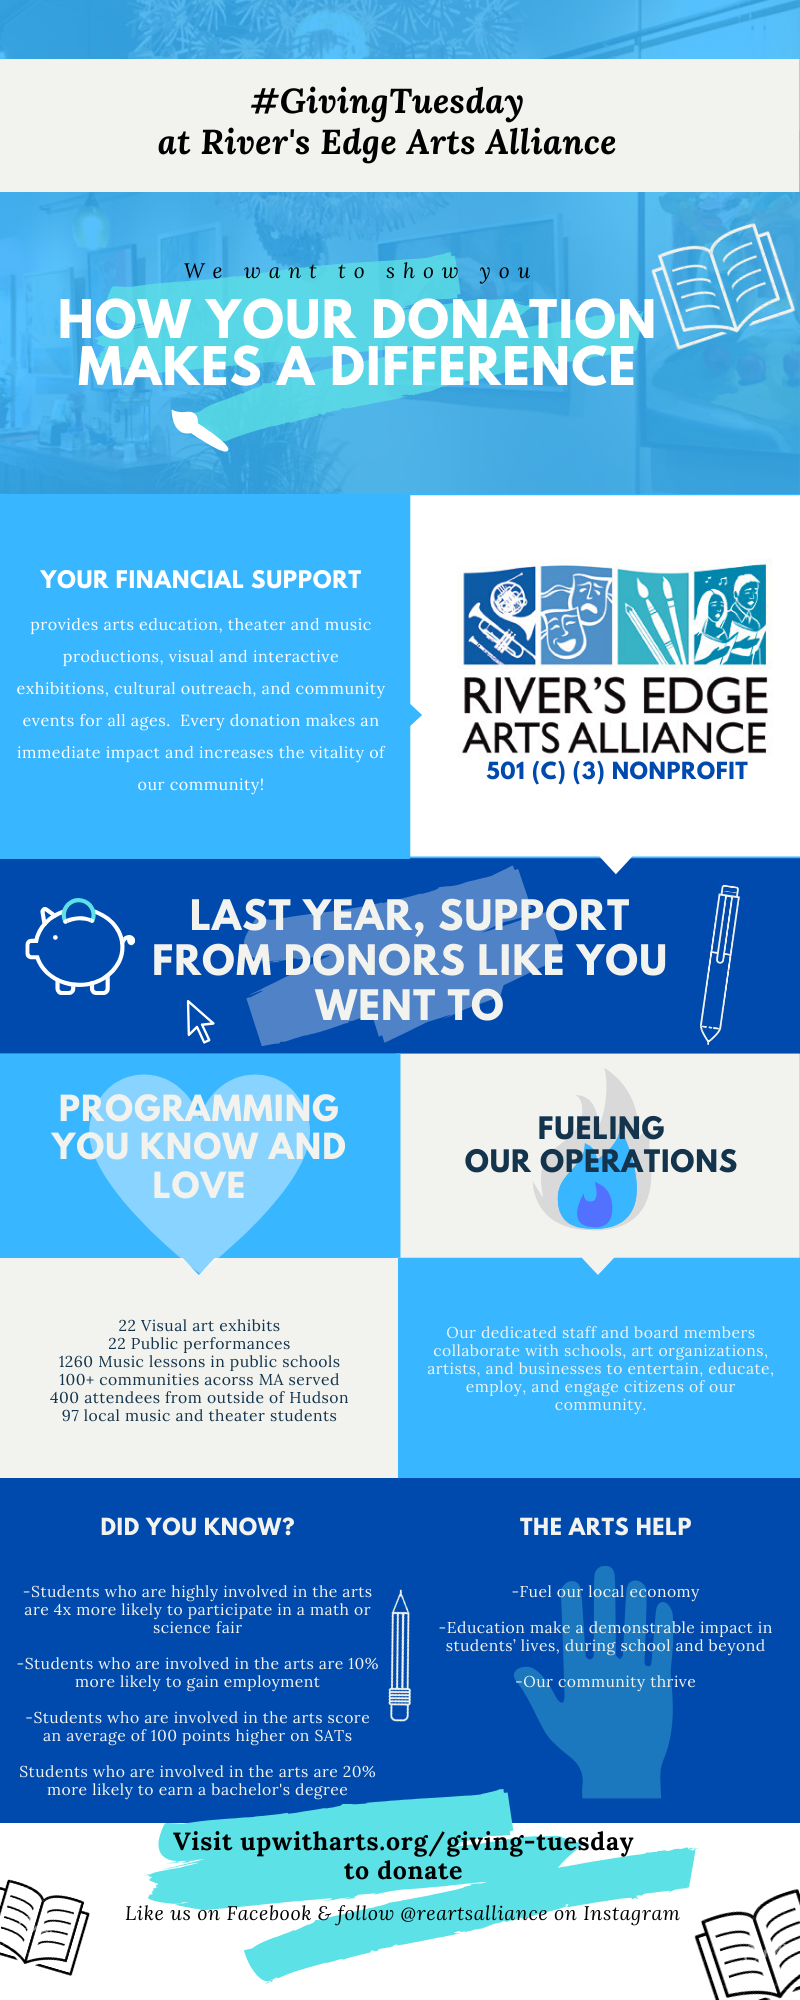 Donate to River's Edge Arts Alliance